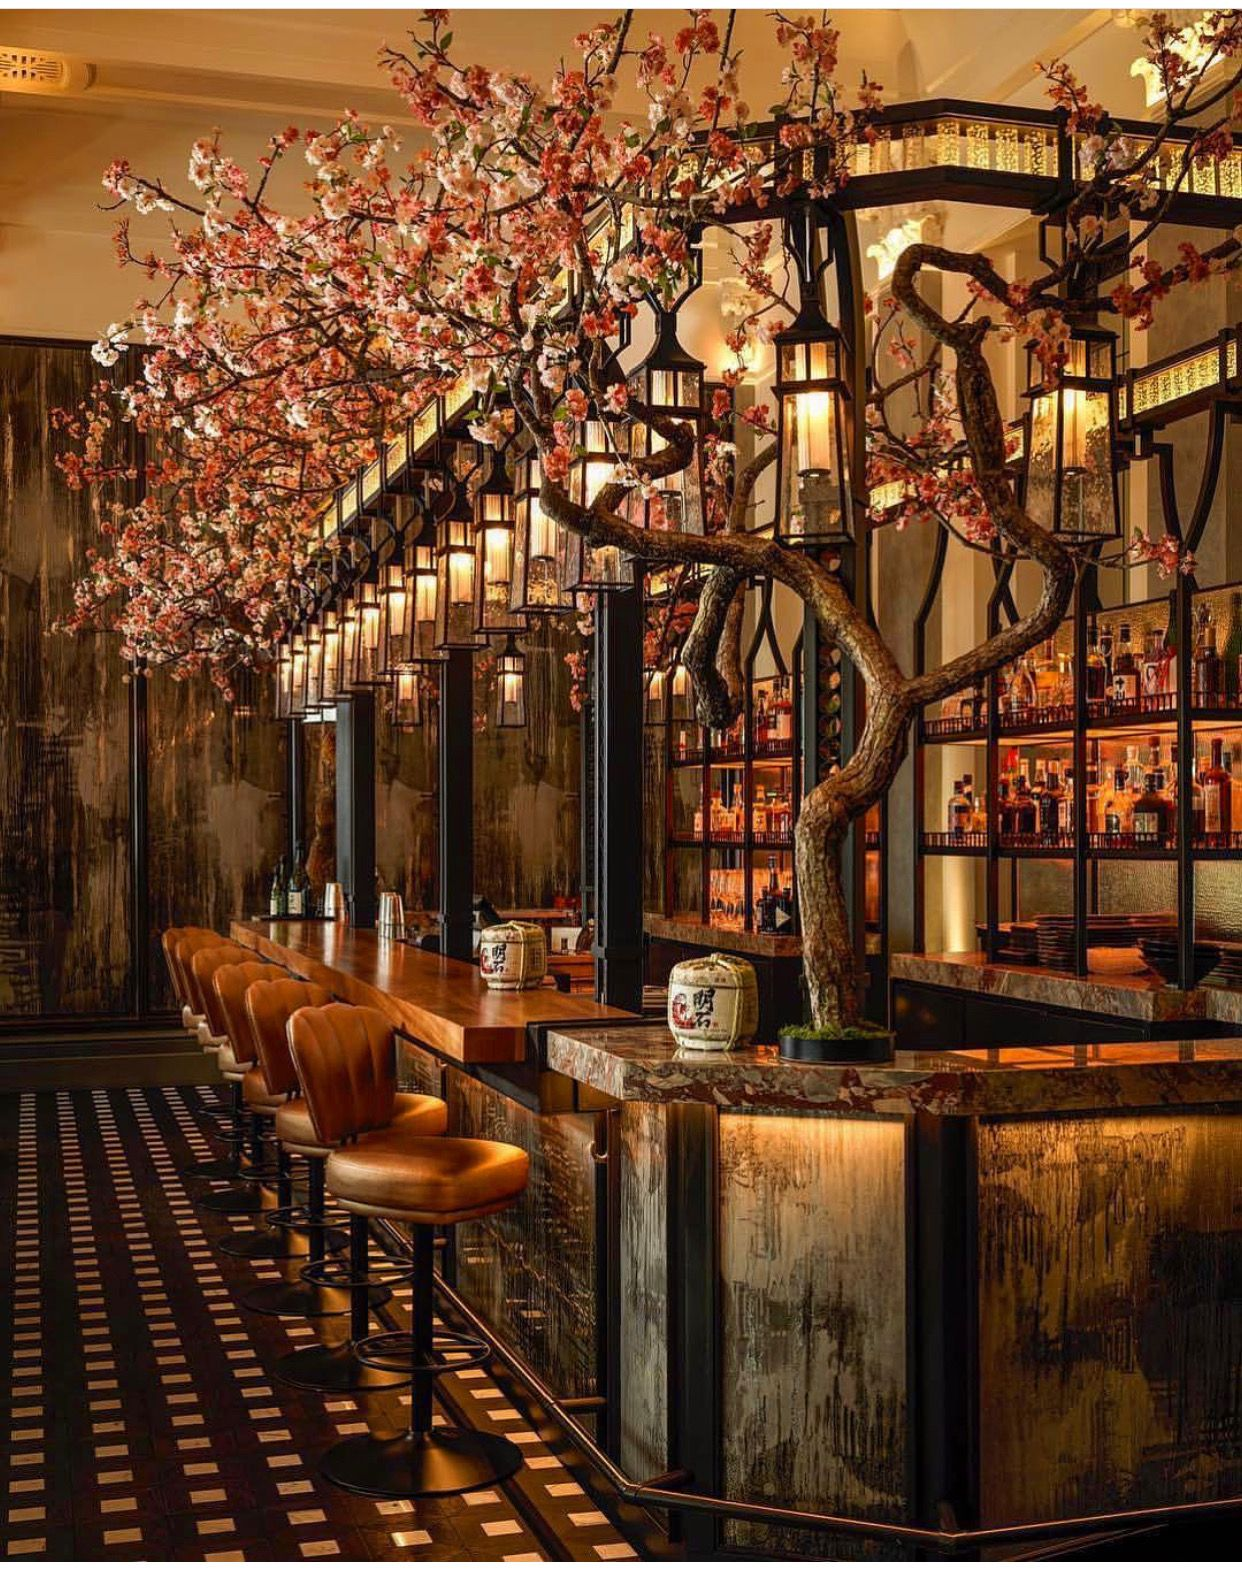 Pin by Janell Rhoades on Dreaming Bar design restaurant